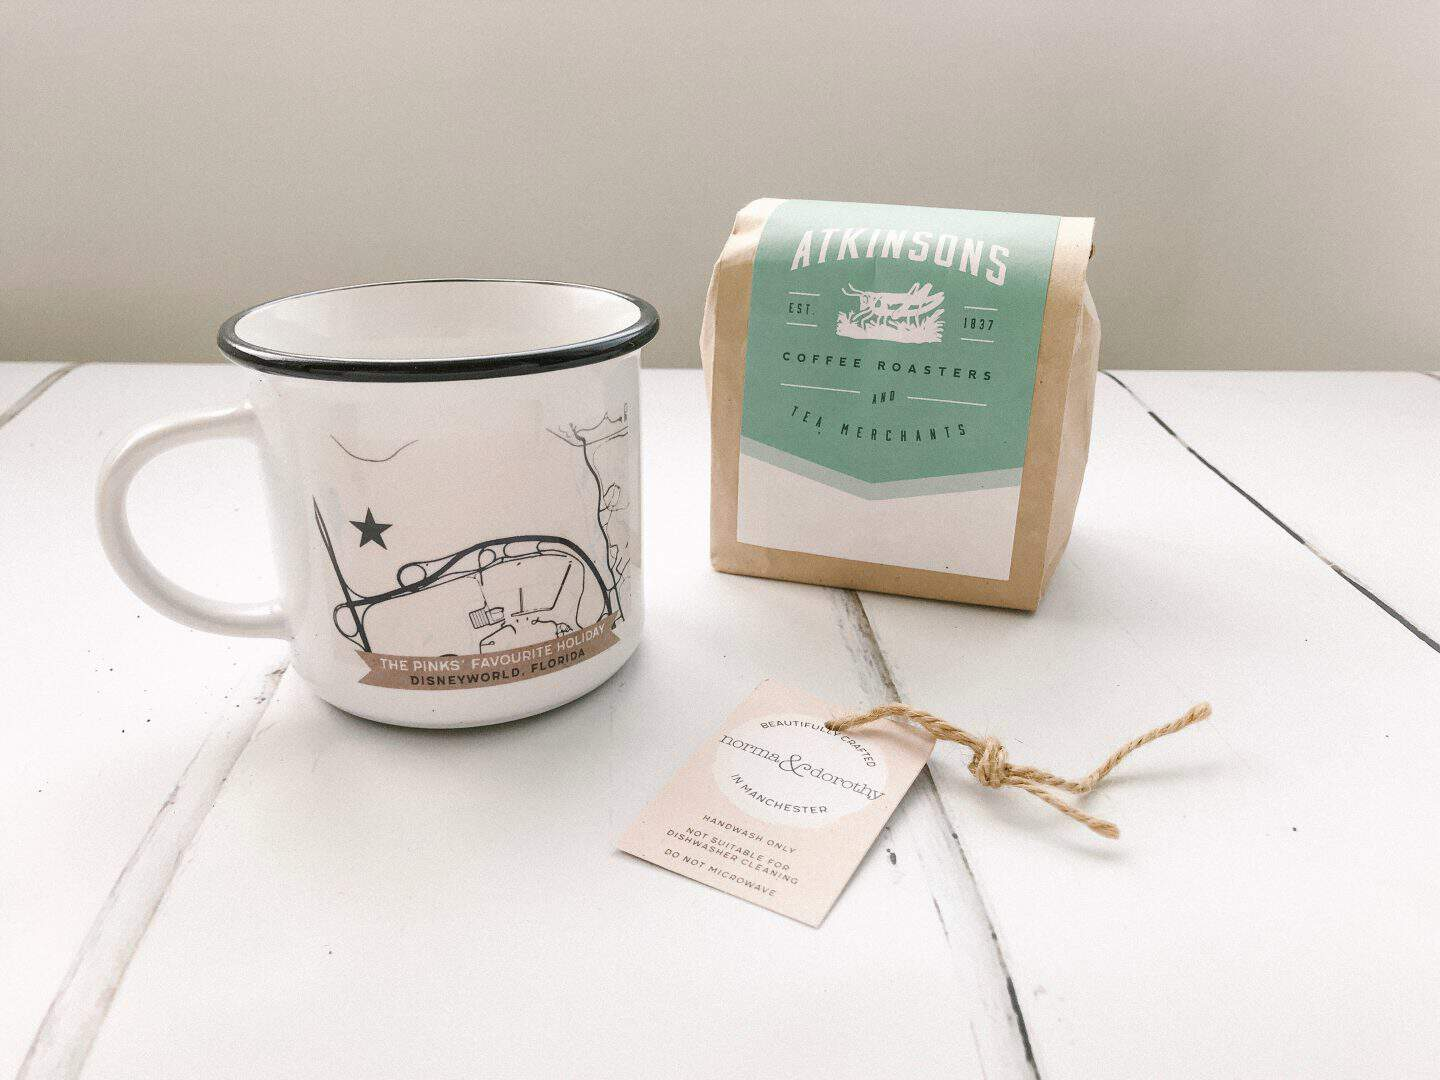 Personalised mug and coffee from Norma & Dorothy is a great Father's Day present